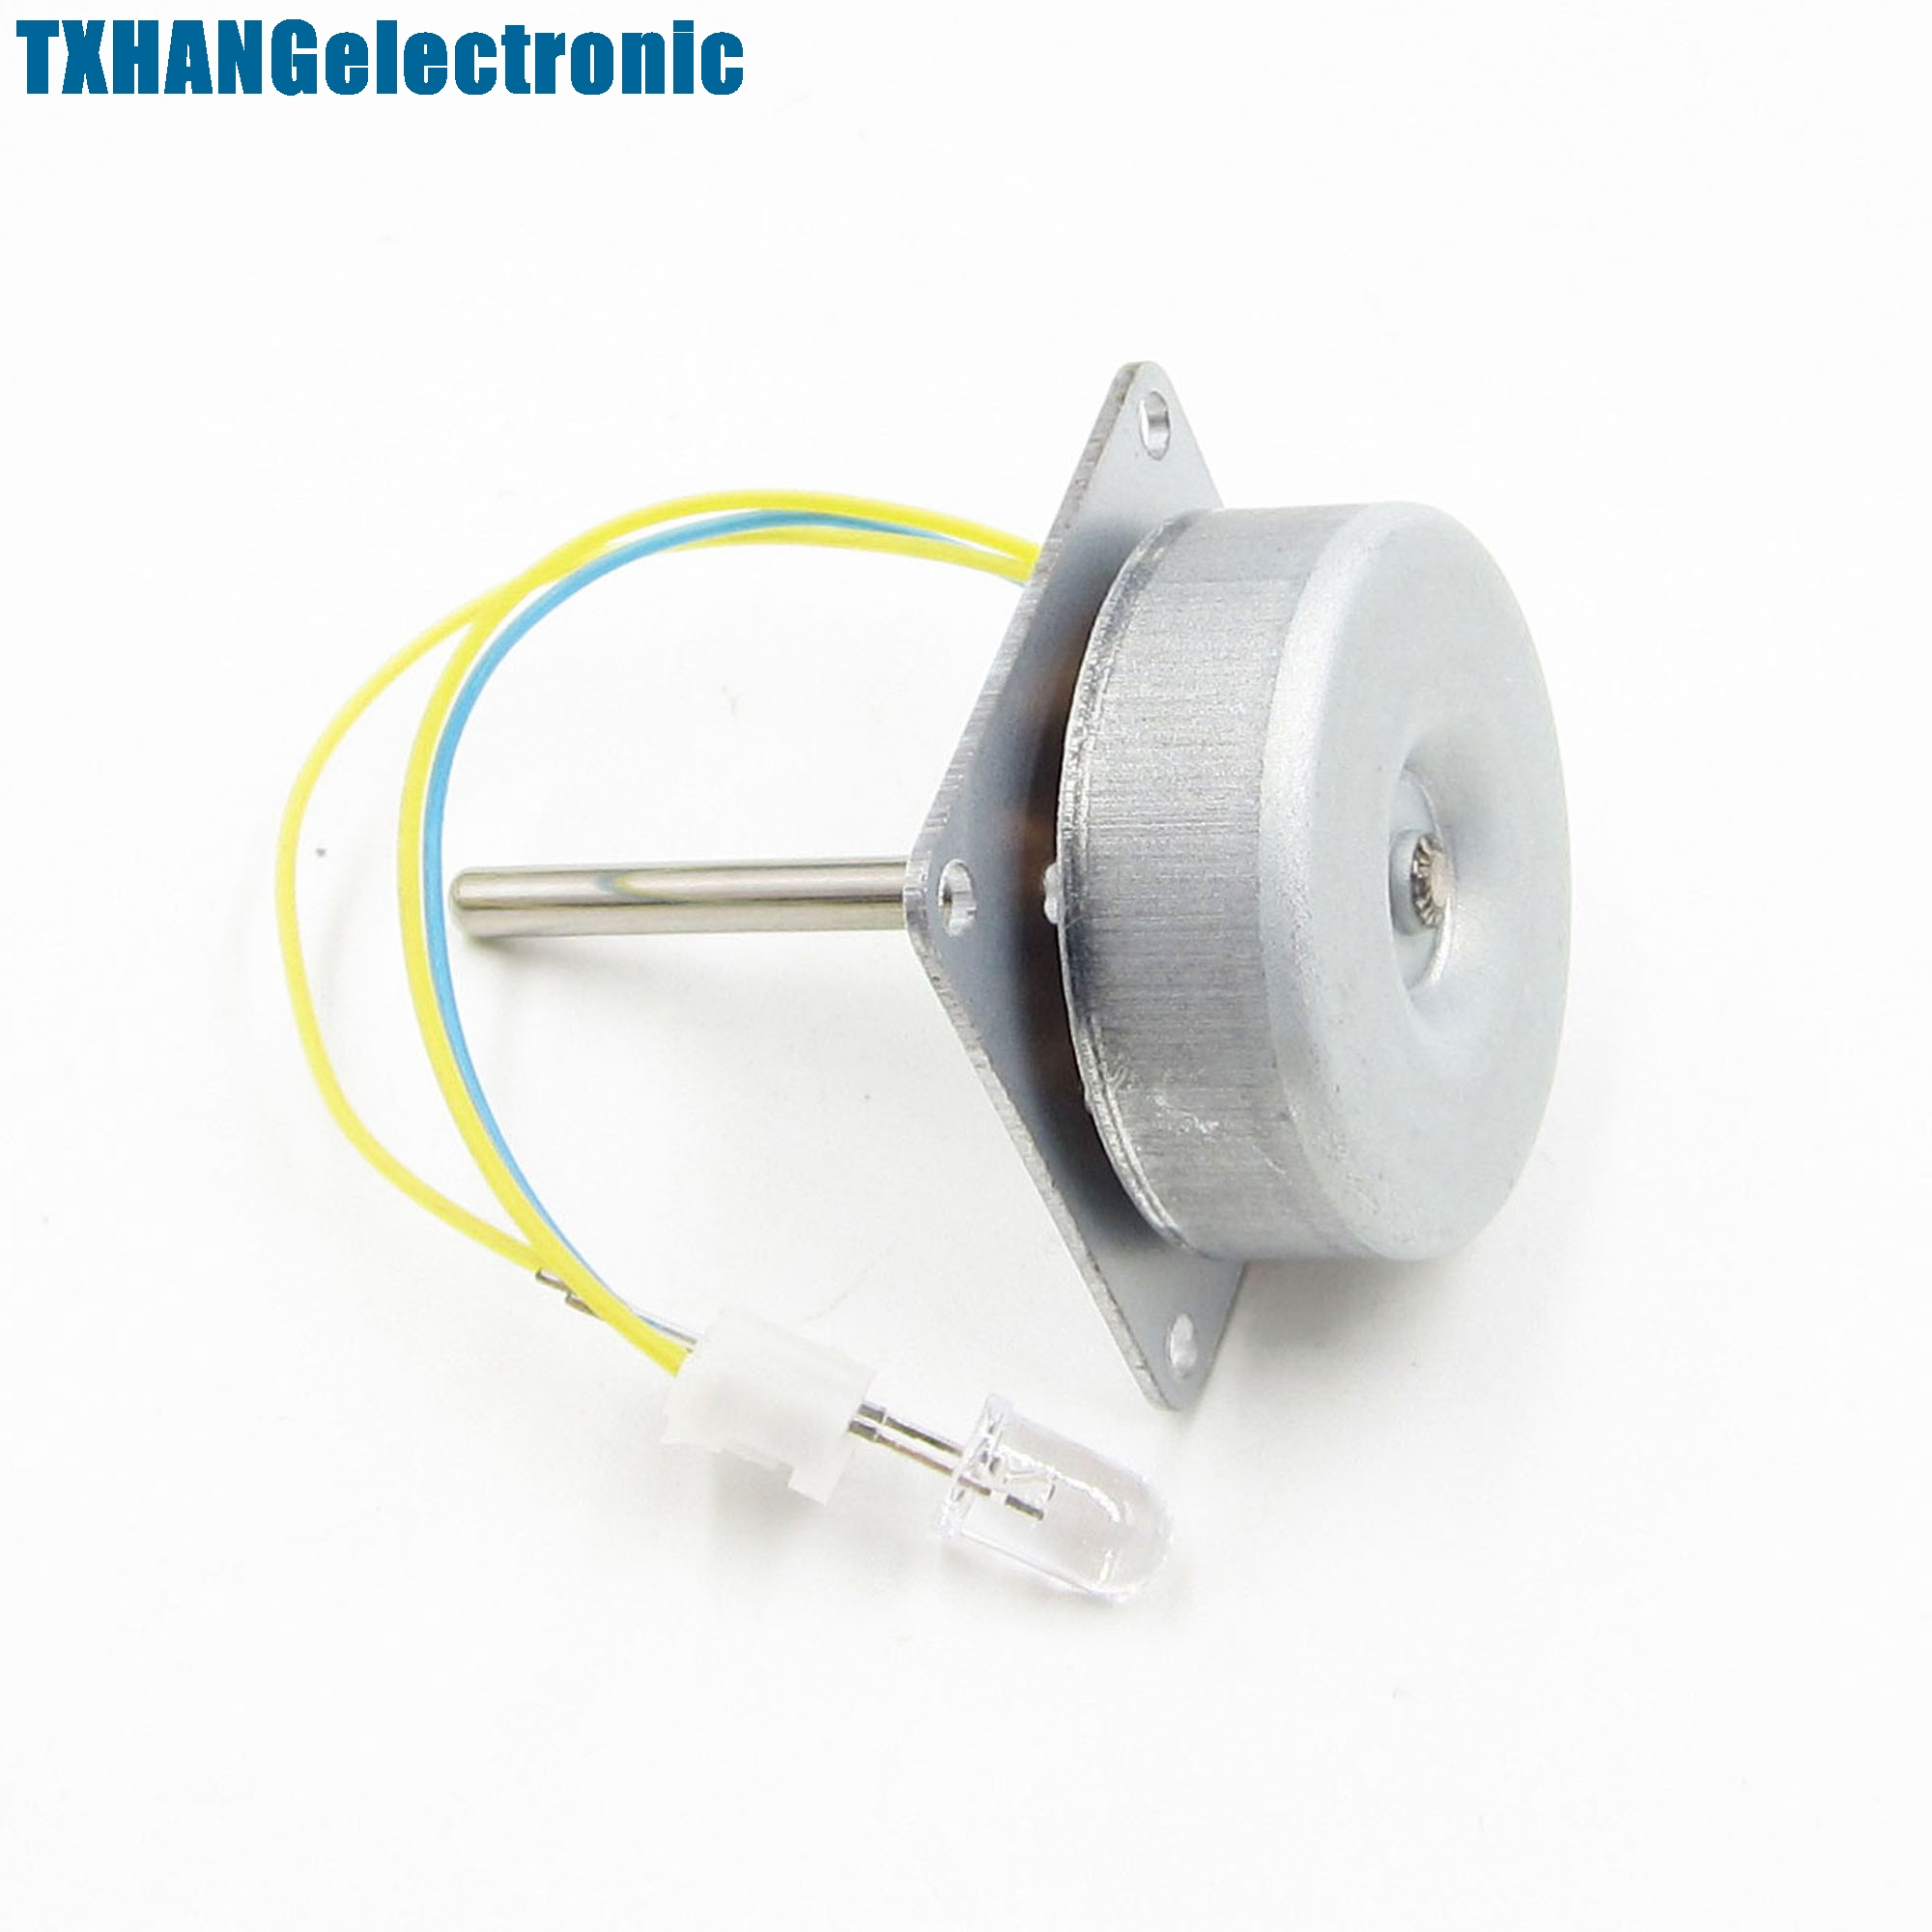 Realistisch Ac 3 Phase Micro Brushless Generator Wind Hand Generator Motor 3-24 V Diy Angenehme SüßE